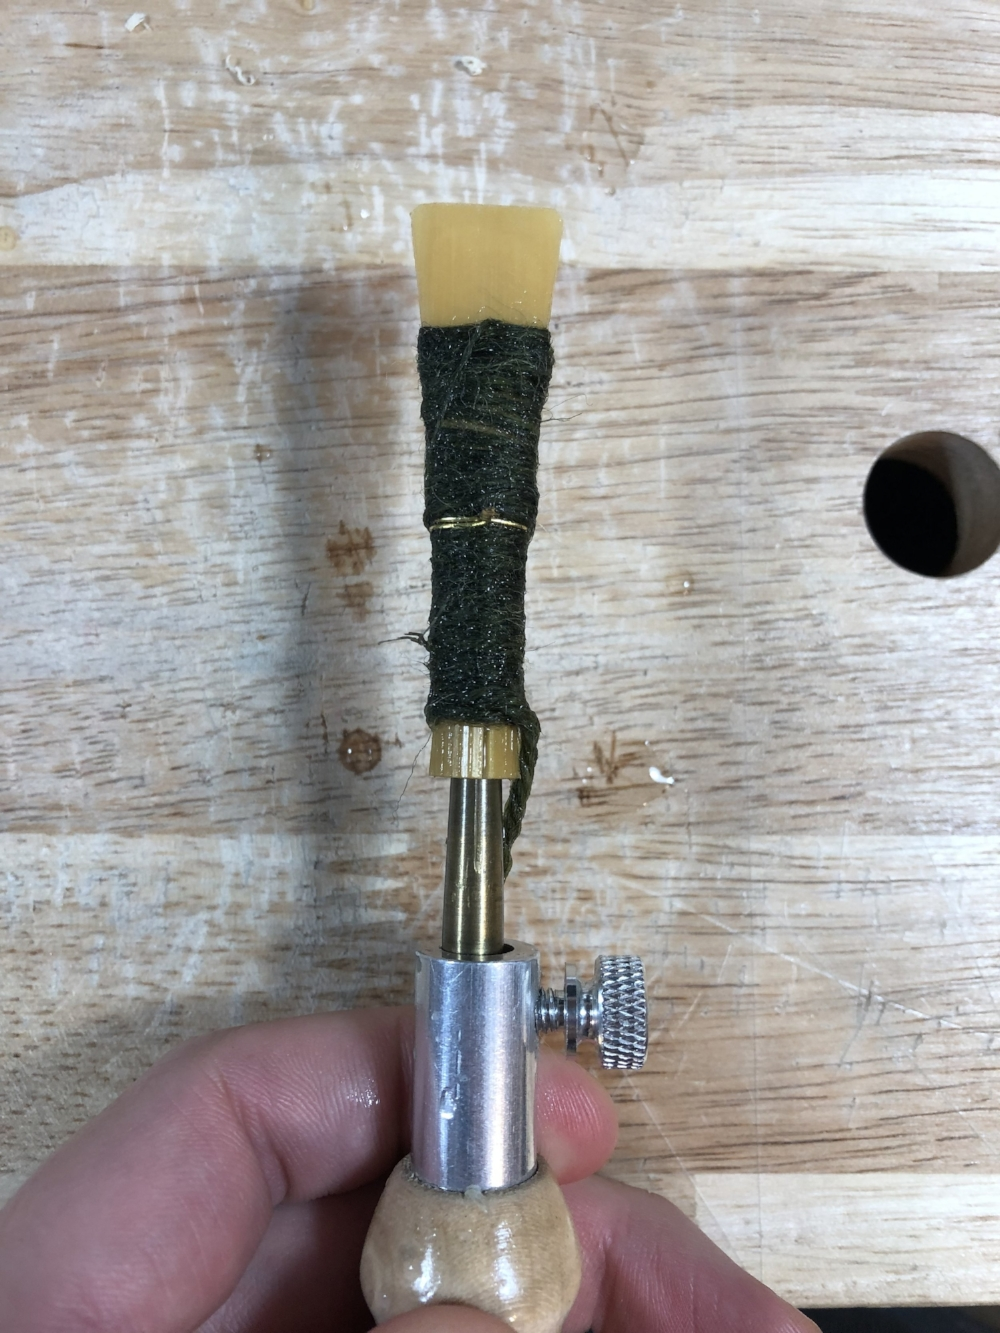 Forming the Reed! - Insert the mandrel in the center of the back end of the reed. Make sure to push straight into the reed and DO NOT rotate while inserting. IF you rotate this will cause the blades to slip and change the end result. Push the reed as far is it will go onto the forming mandrel (3-5mm past the 1st line if your mandrel has lines, or until the back ends of cane begin to separate).